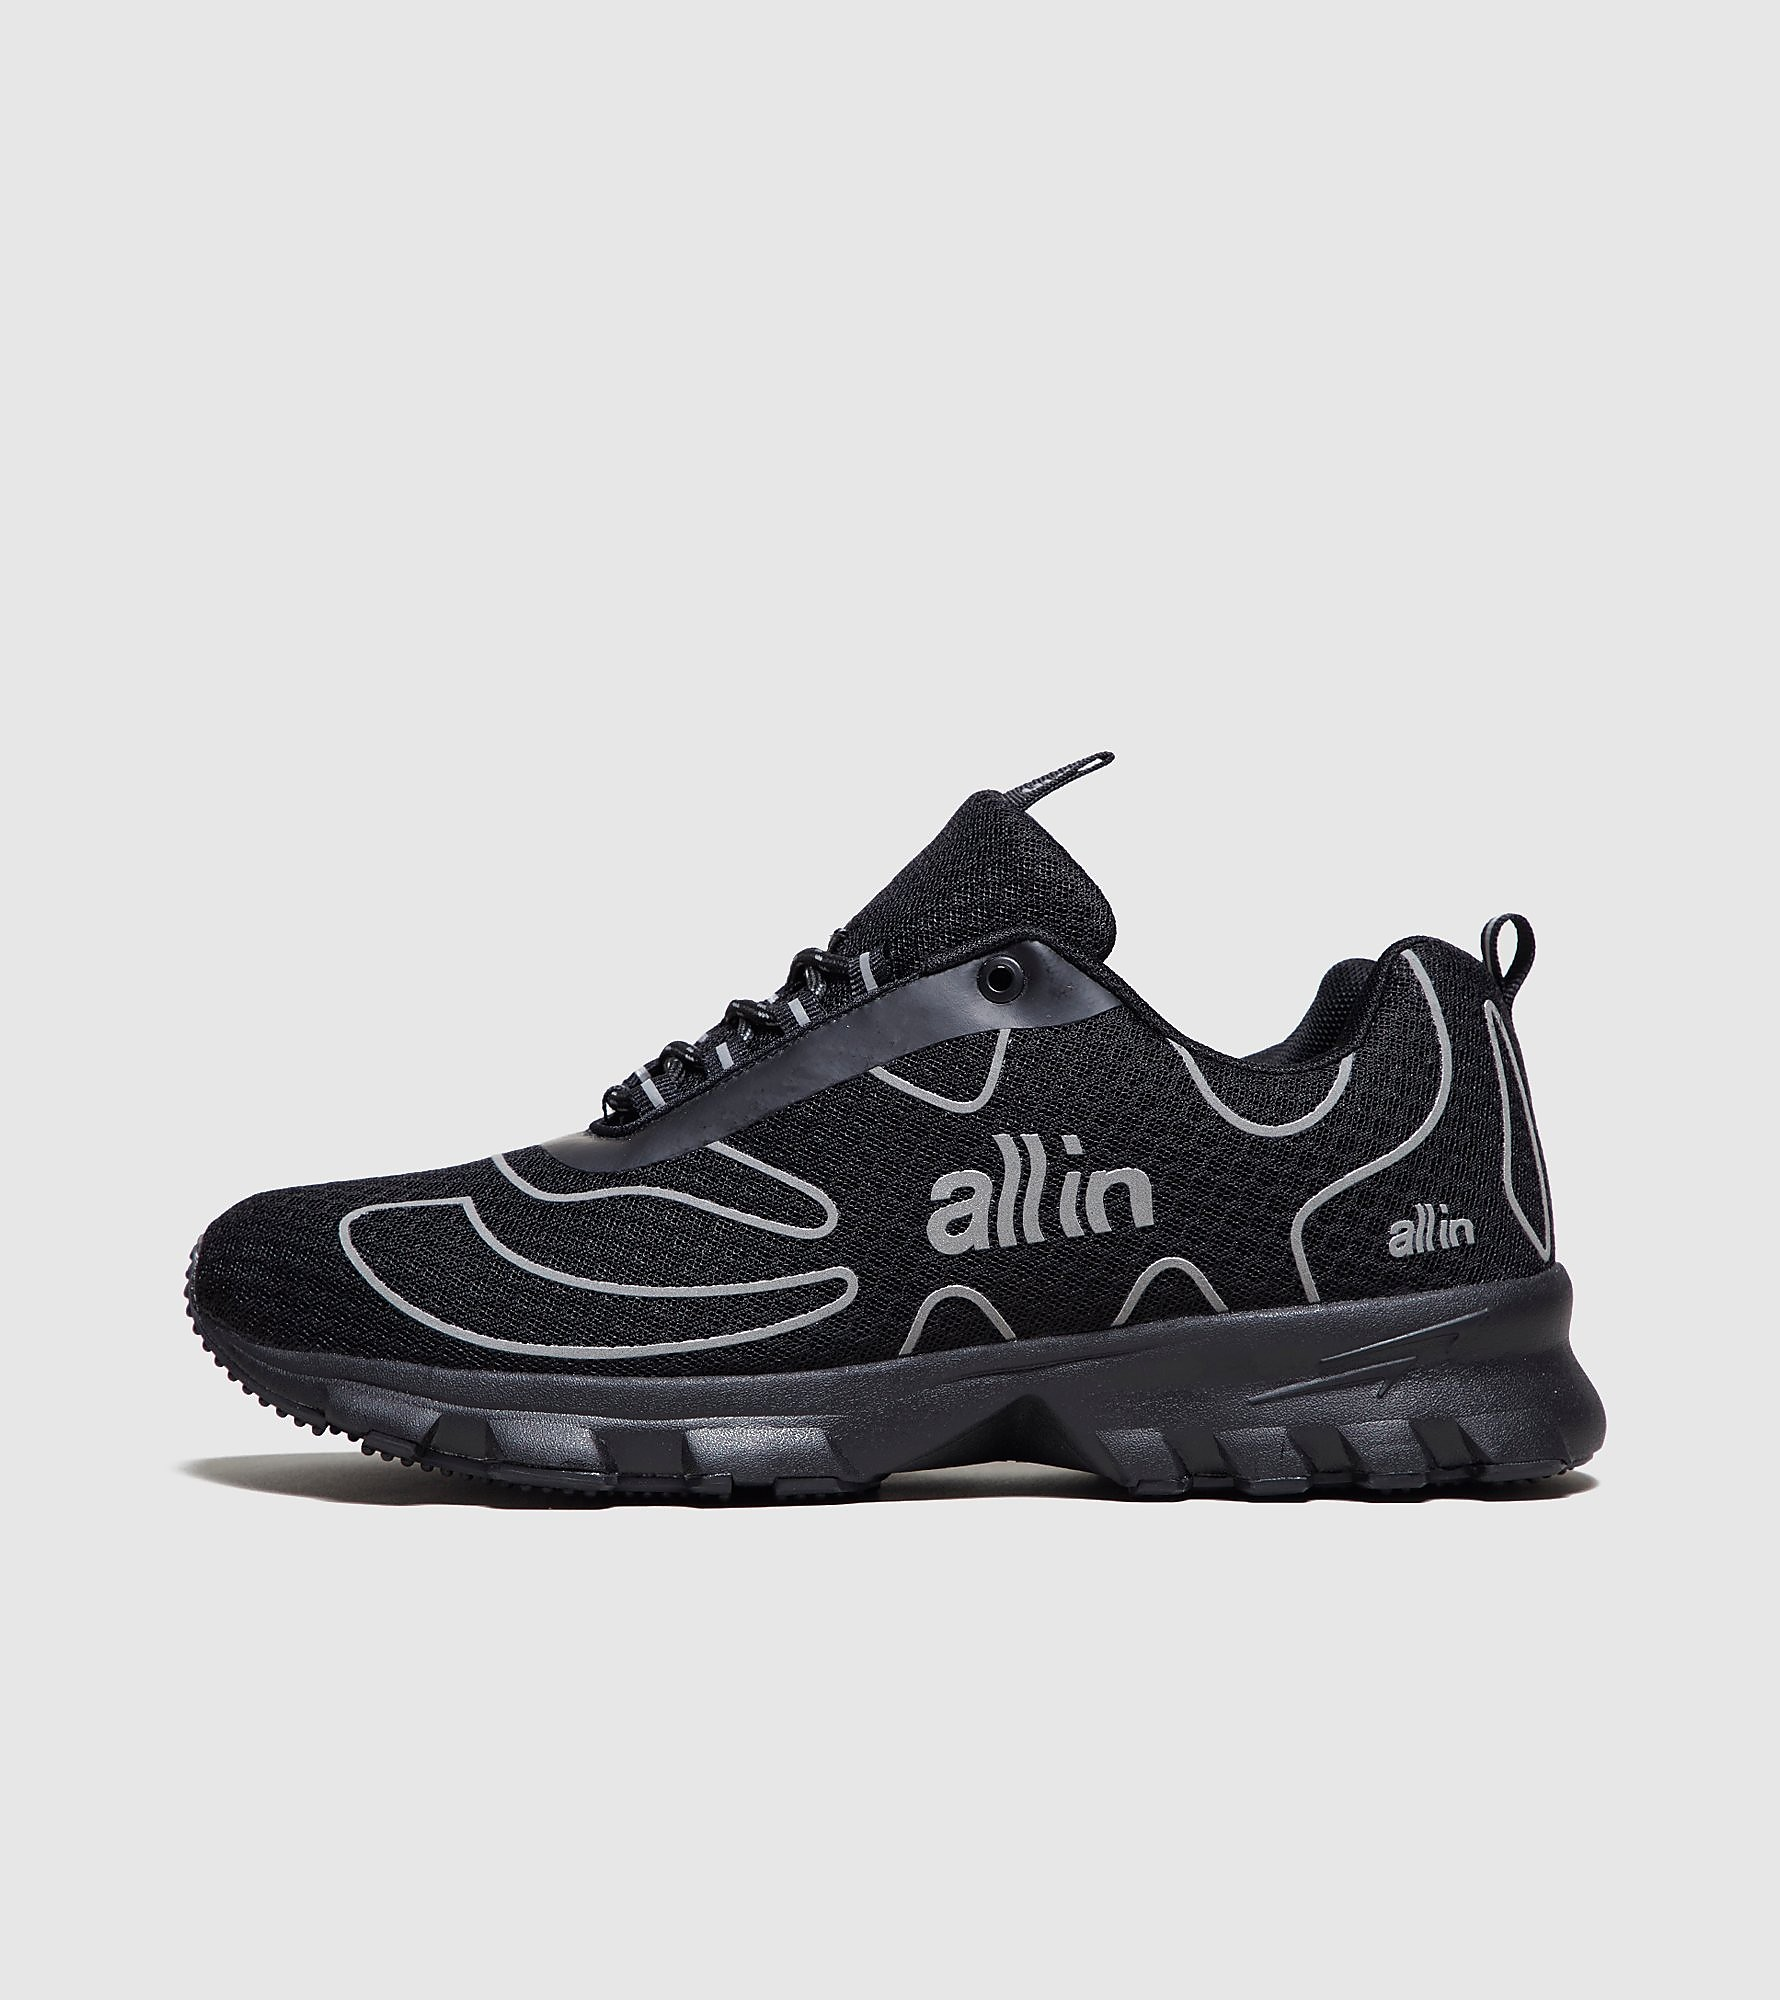 all in Tennis Shoe, Noir